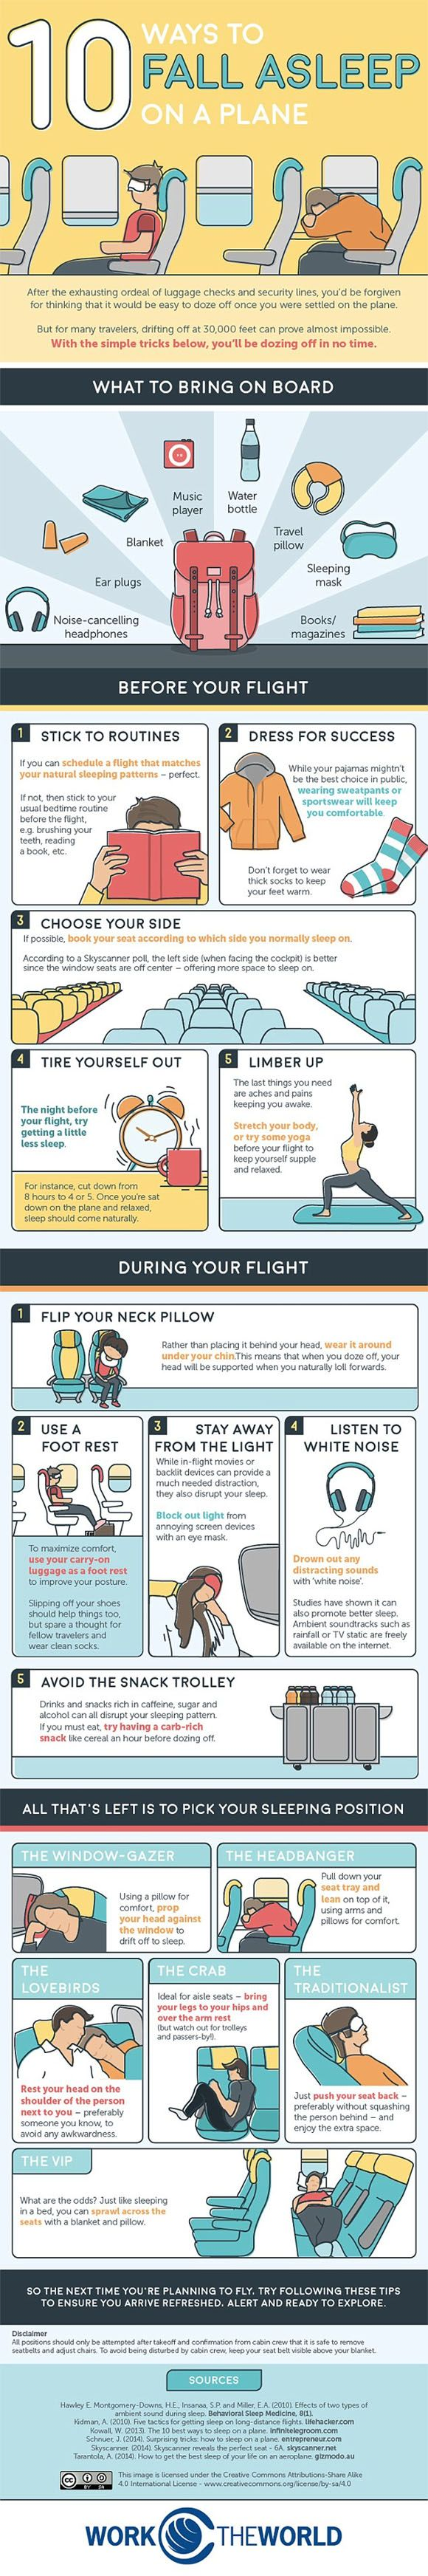 24 AUG 2015:  Some people drift off easily on a plane, others find it impossible to sleep.  Now an infographic created by Work the